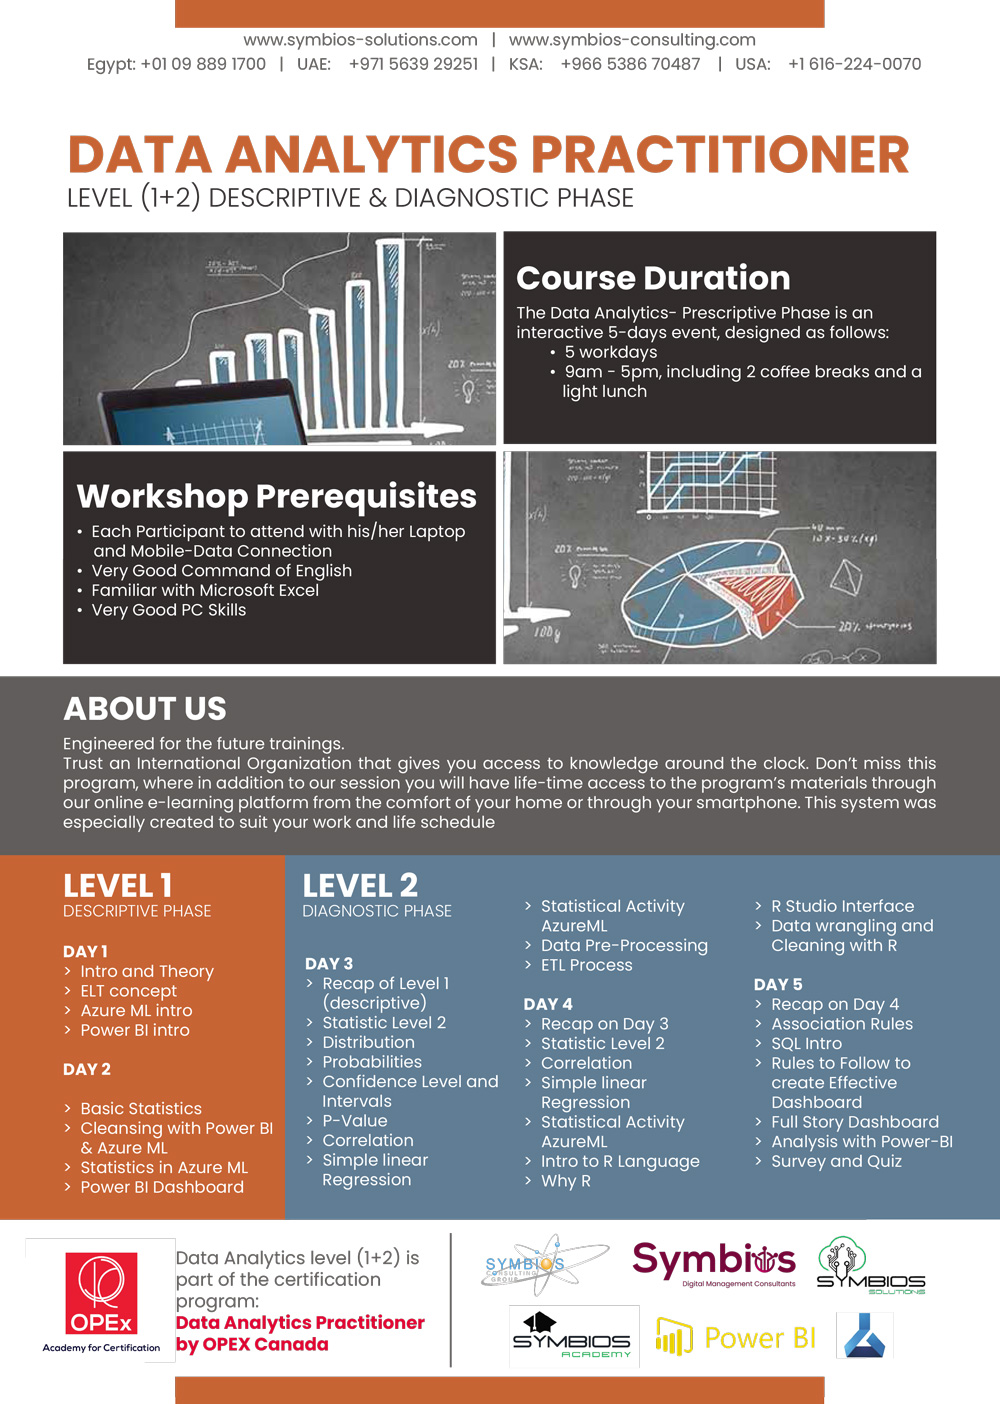 Data Analytics level (1+2) Brochure